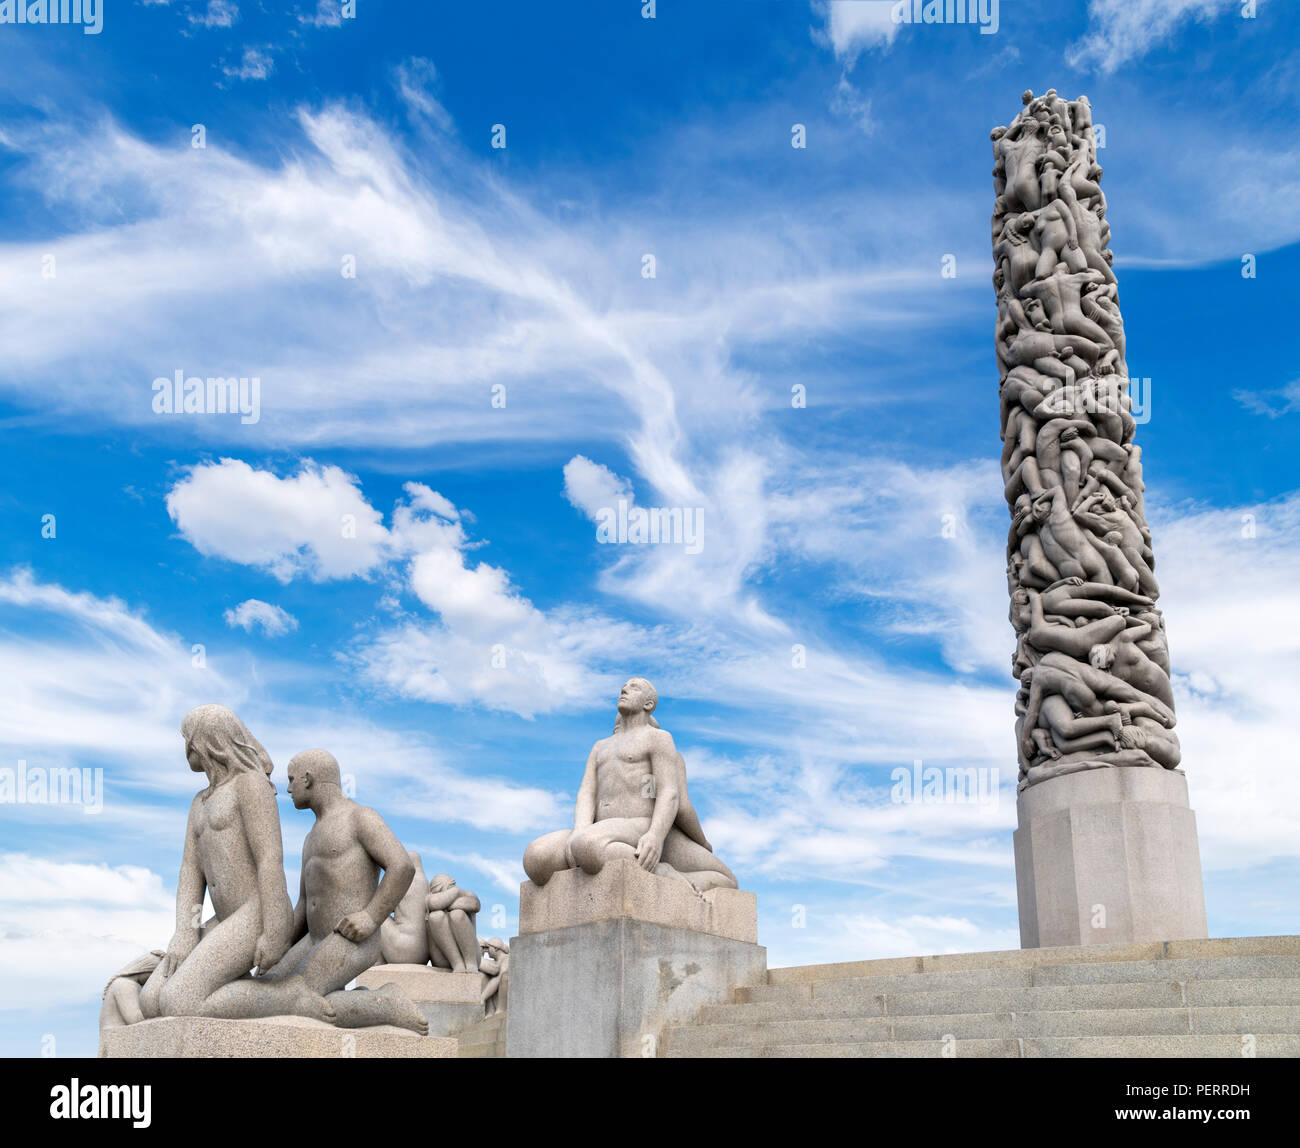 Vigeland Sculpture Park, Oslo. The Monolith and other sculptures by Norwegian sculptor, Gustav Vigeland, Vigelandsparken, Frognerpark, Oslo, Norway Stock Photo